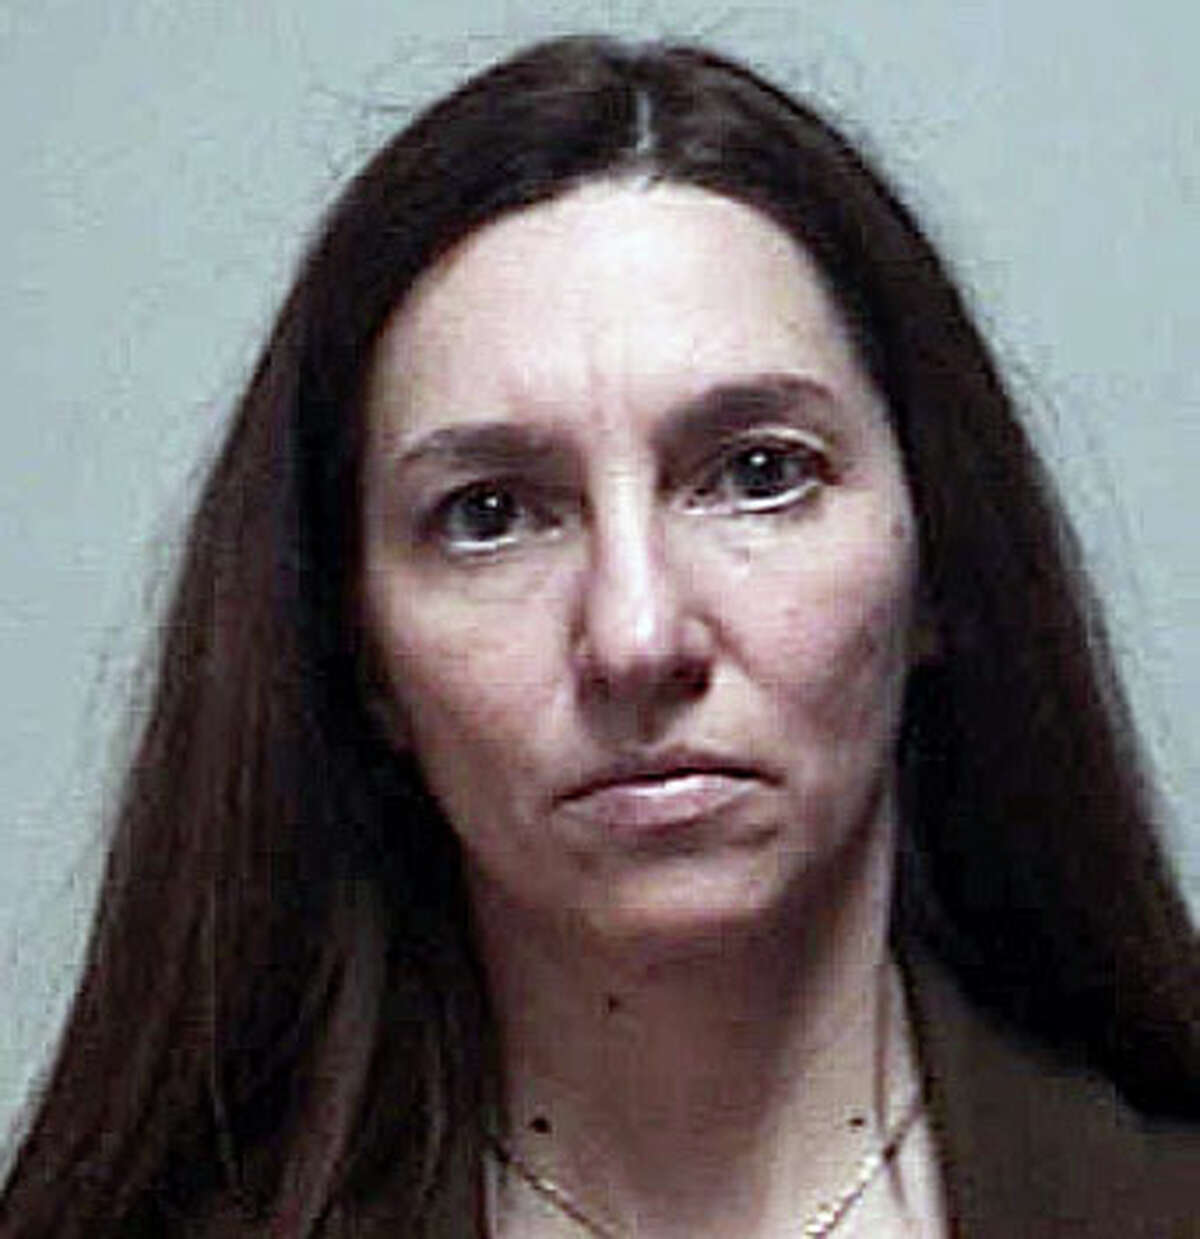 Madalena Abrams, 48, of Bridgeport, is facing multiple charges of computer crime and identity theft.